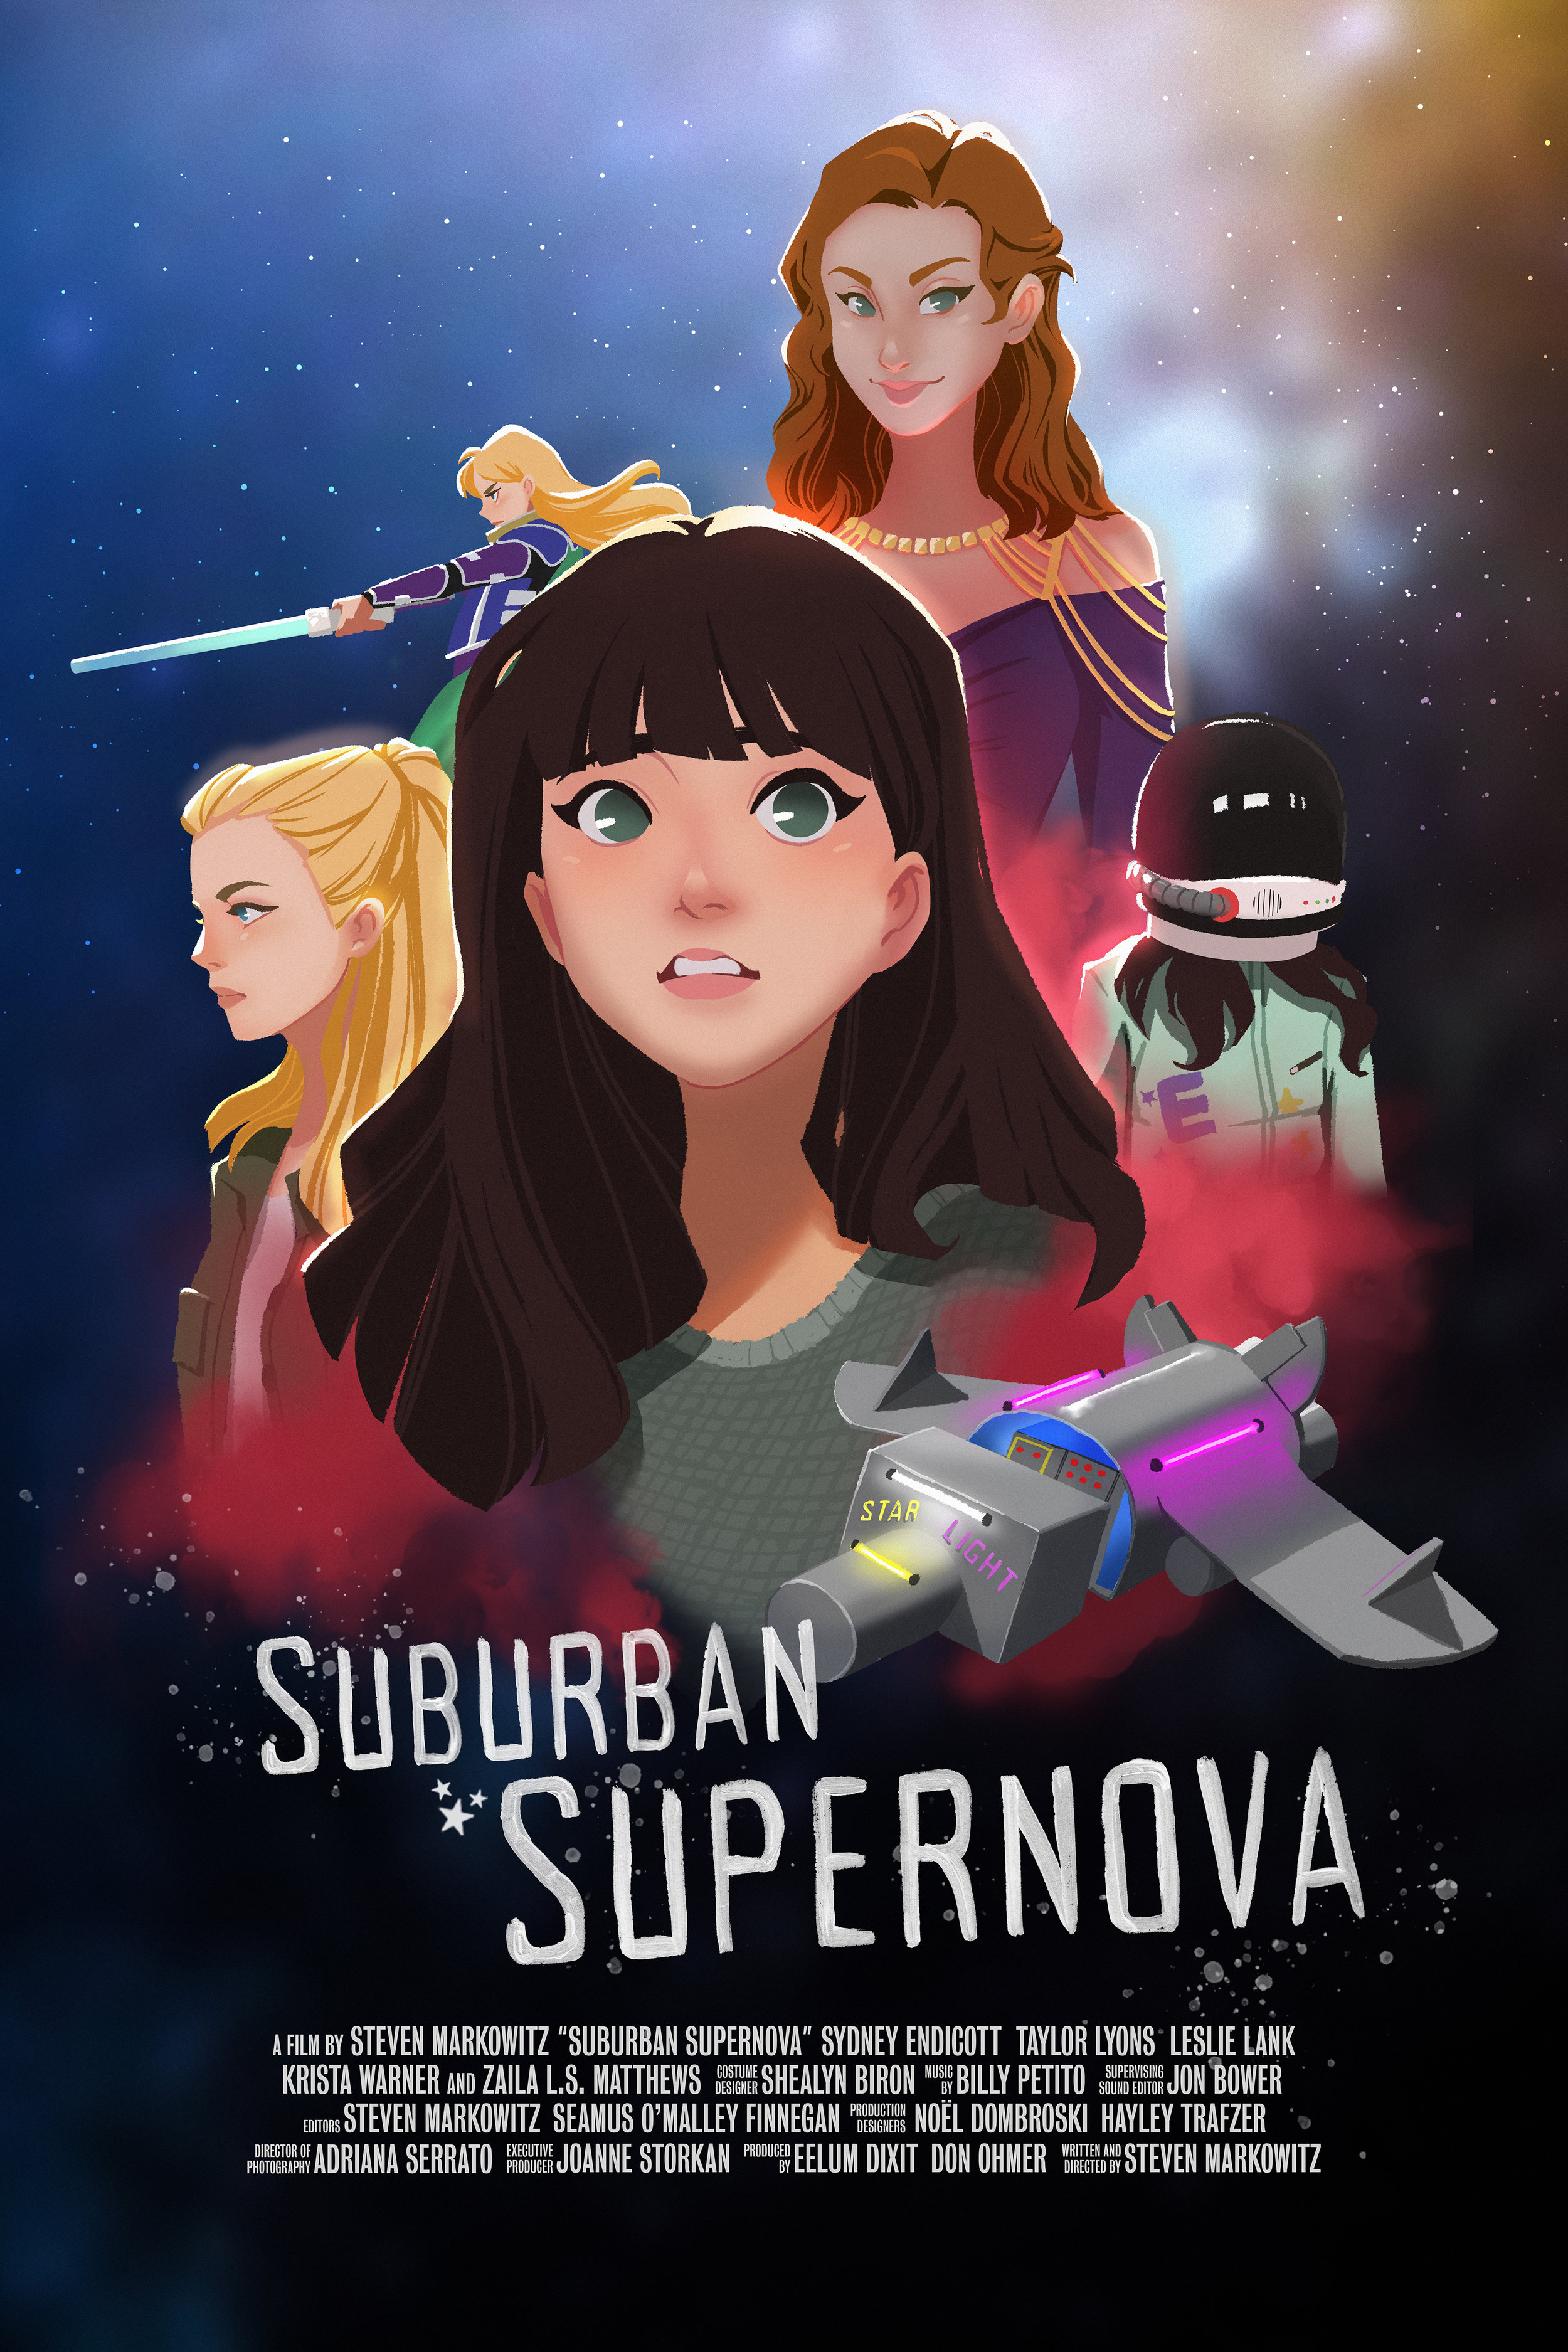 Suburban Supernova - Directed by Steve Markowitz1st Assistant Camera